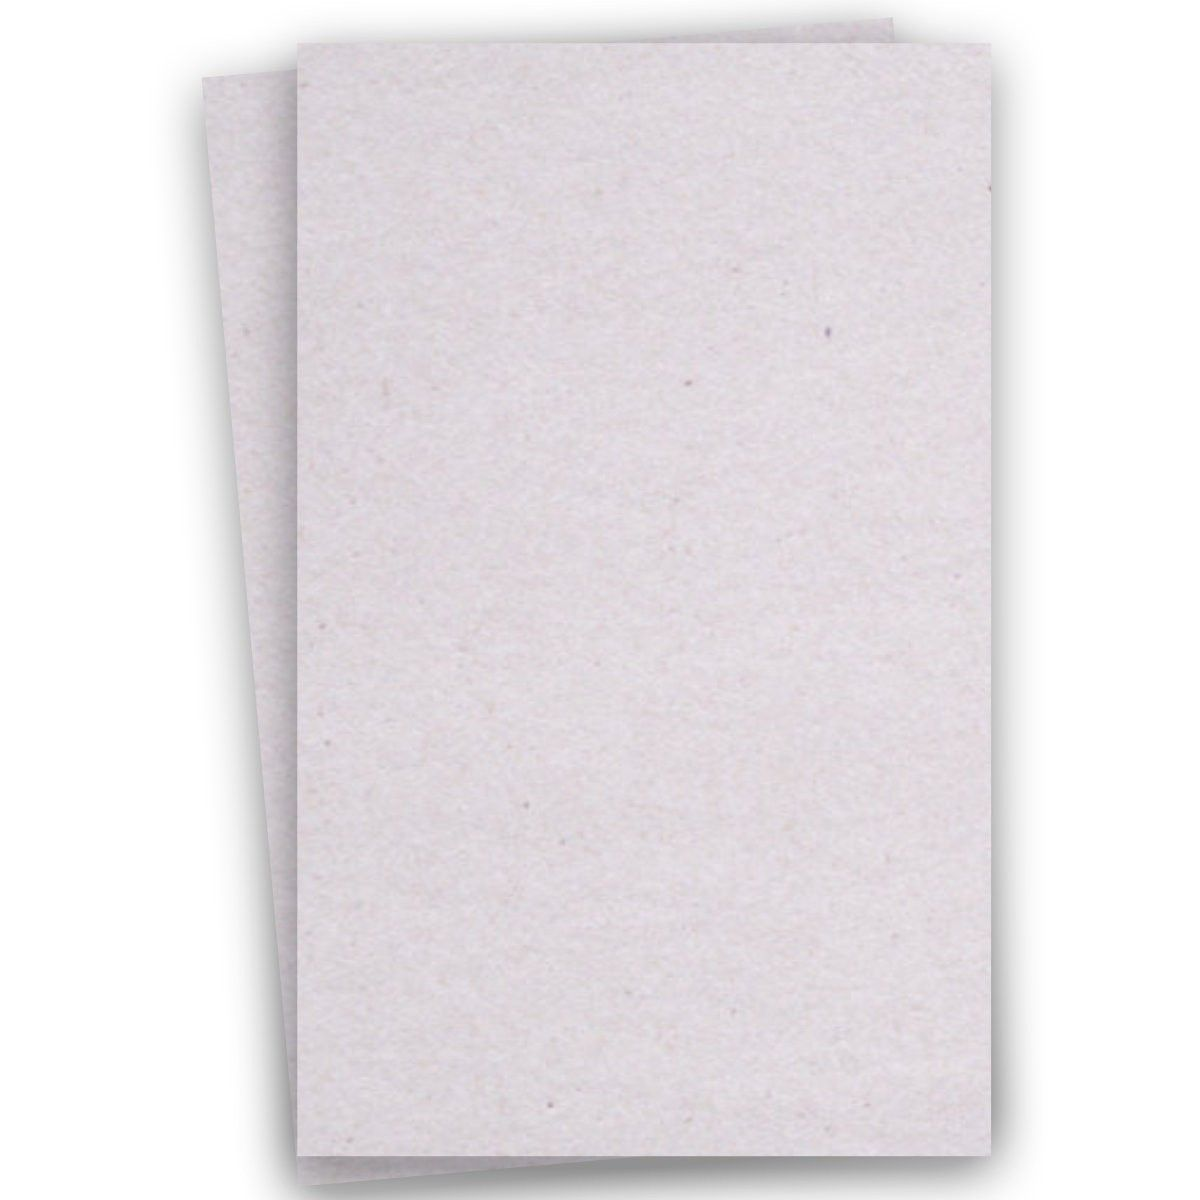 Remake Oyster 11x17 Card Stock Paper 92lb Cover 250gsm 100 Pk Cardstock Paper Luxury Paper Paper